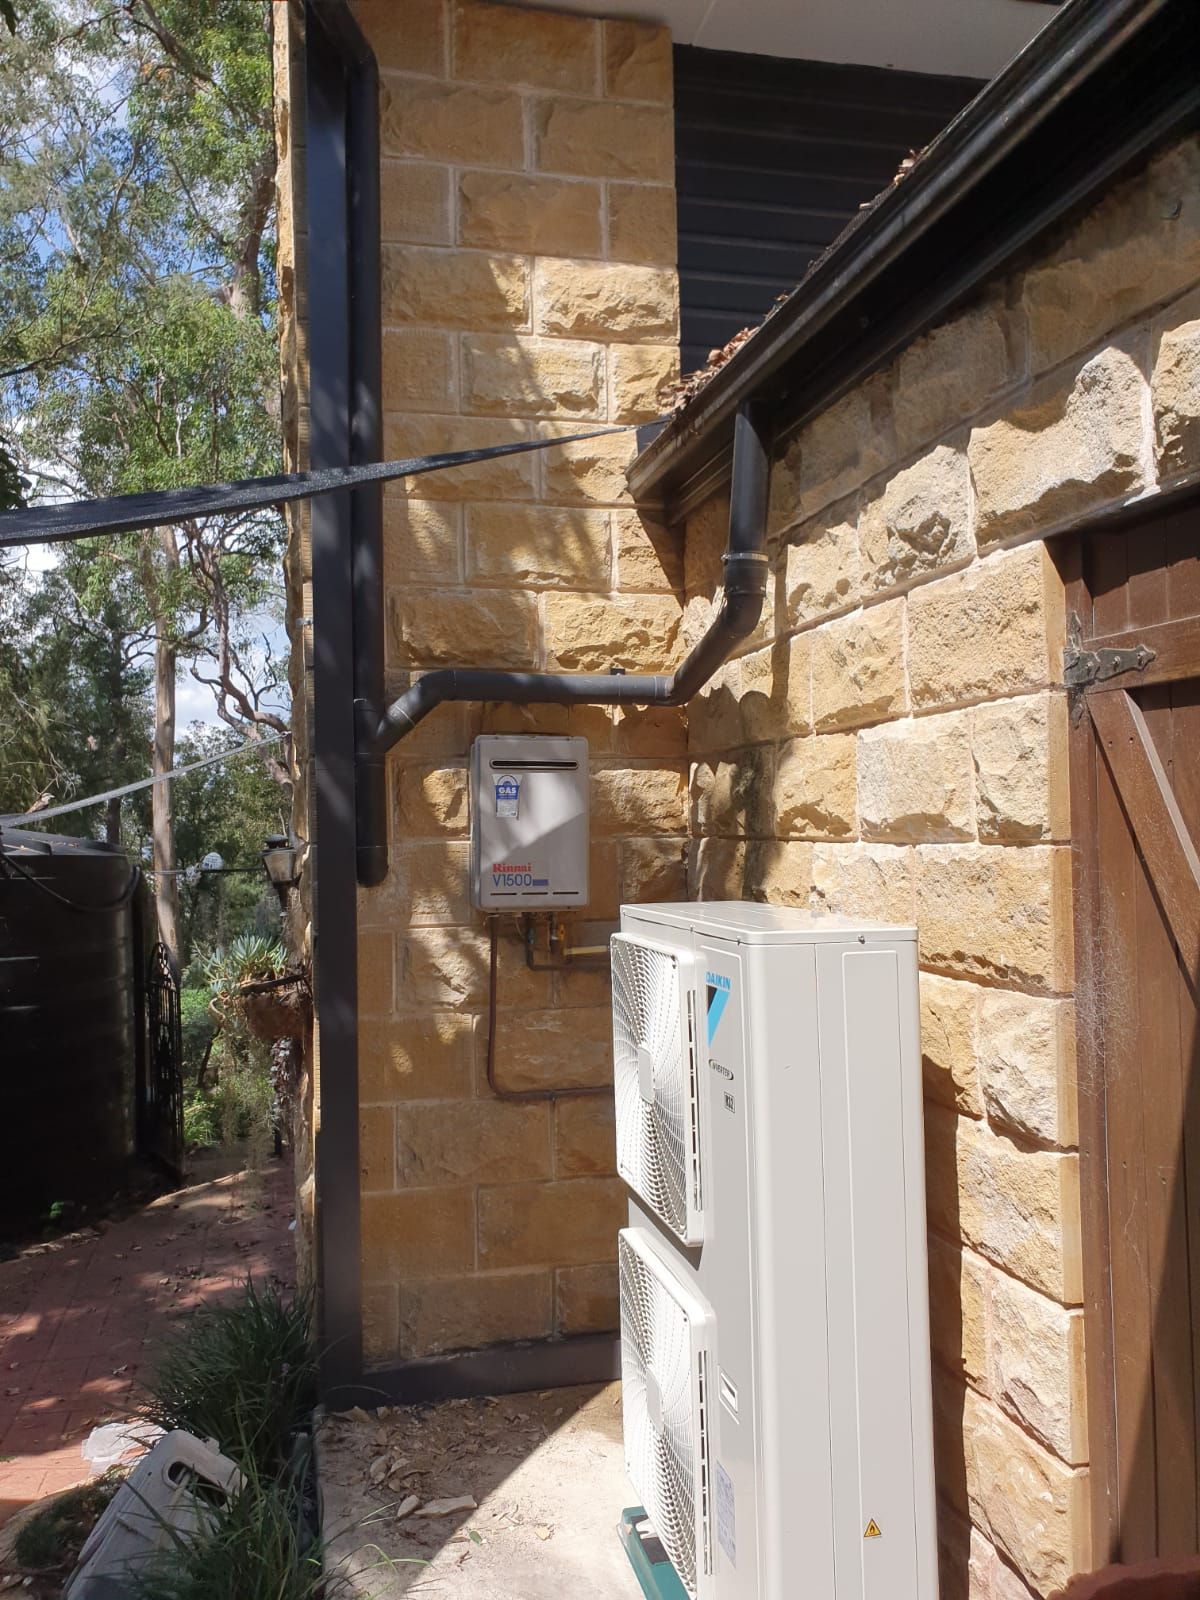 A residential air conditioning system outside a home